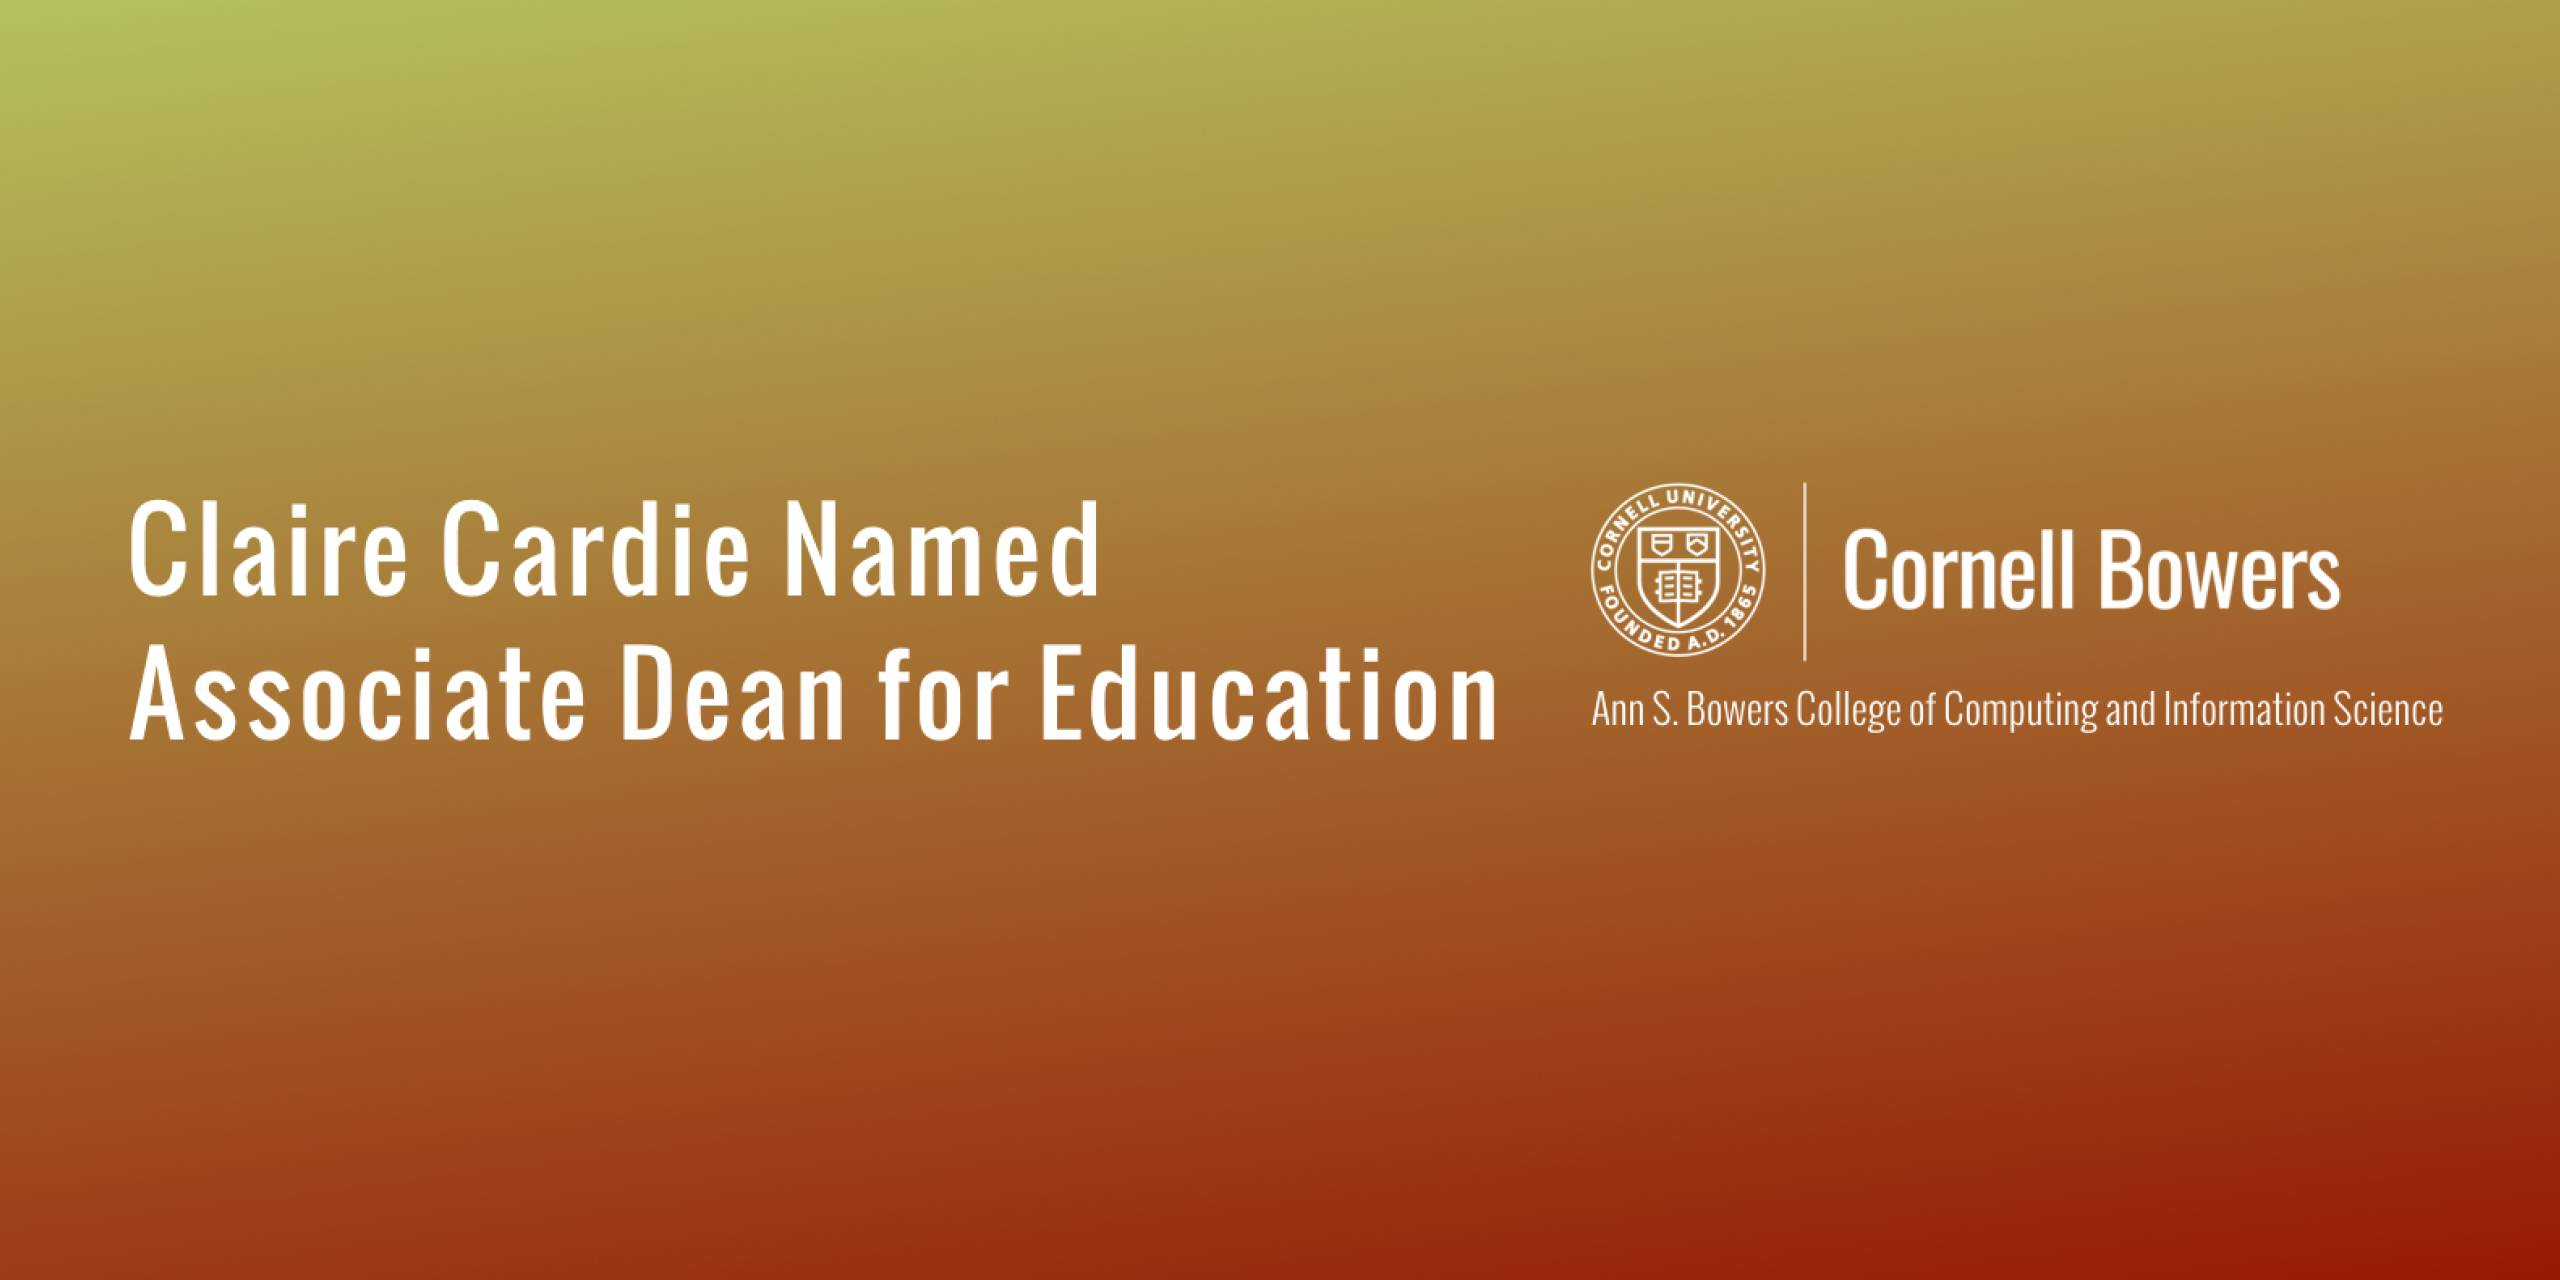 Claire Cardie Named Inaugural Associate Dean for Education